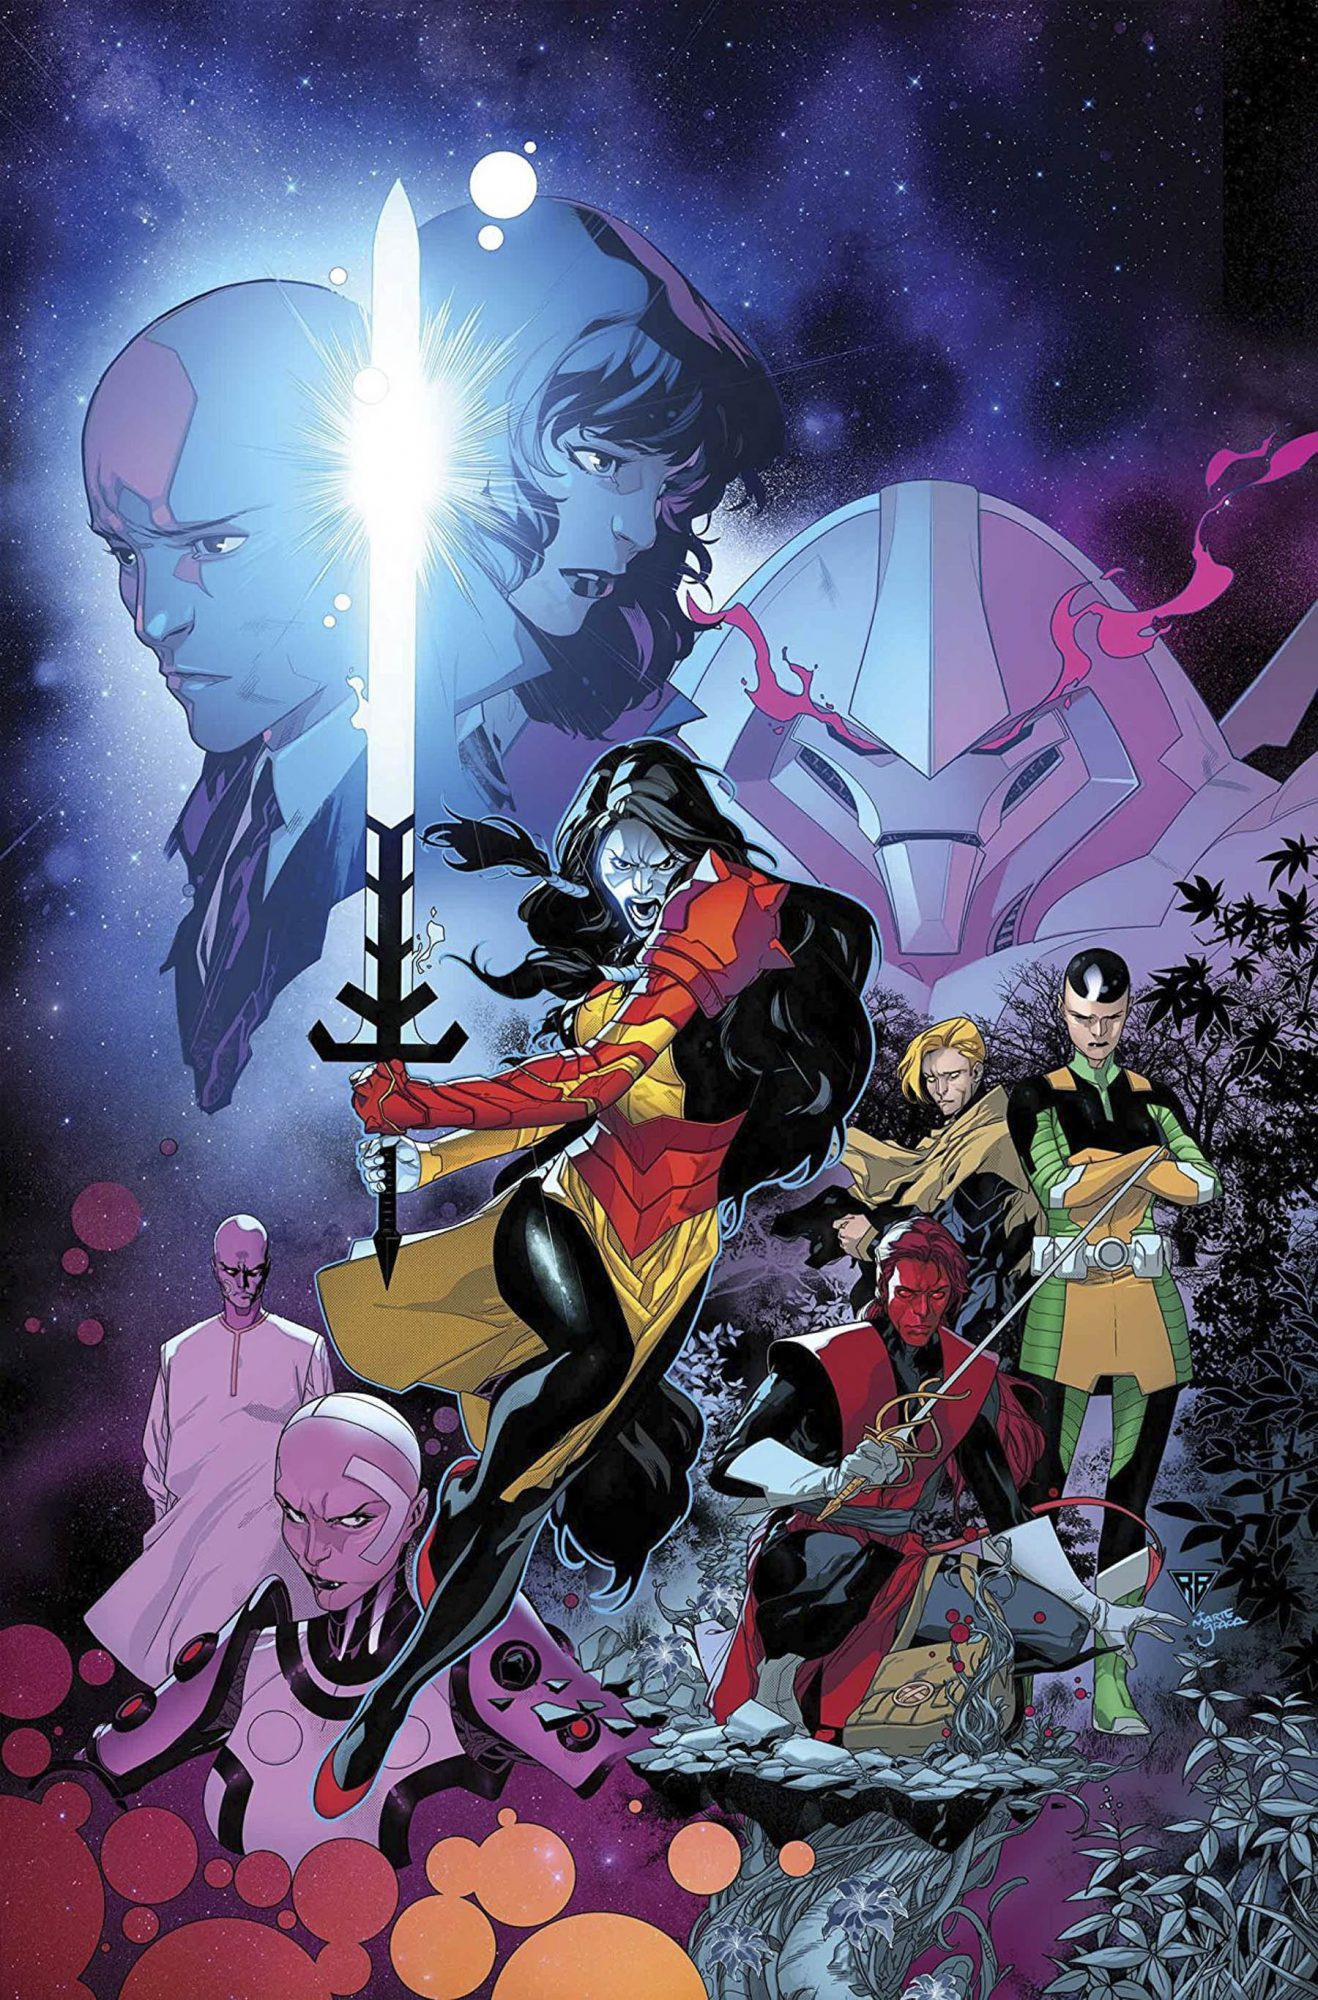 Powers Of X (2019-) #1 (of 6) CR: Marvel